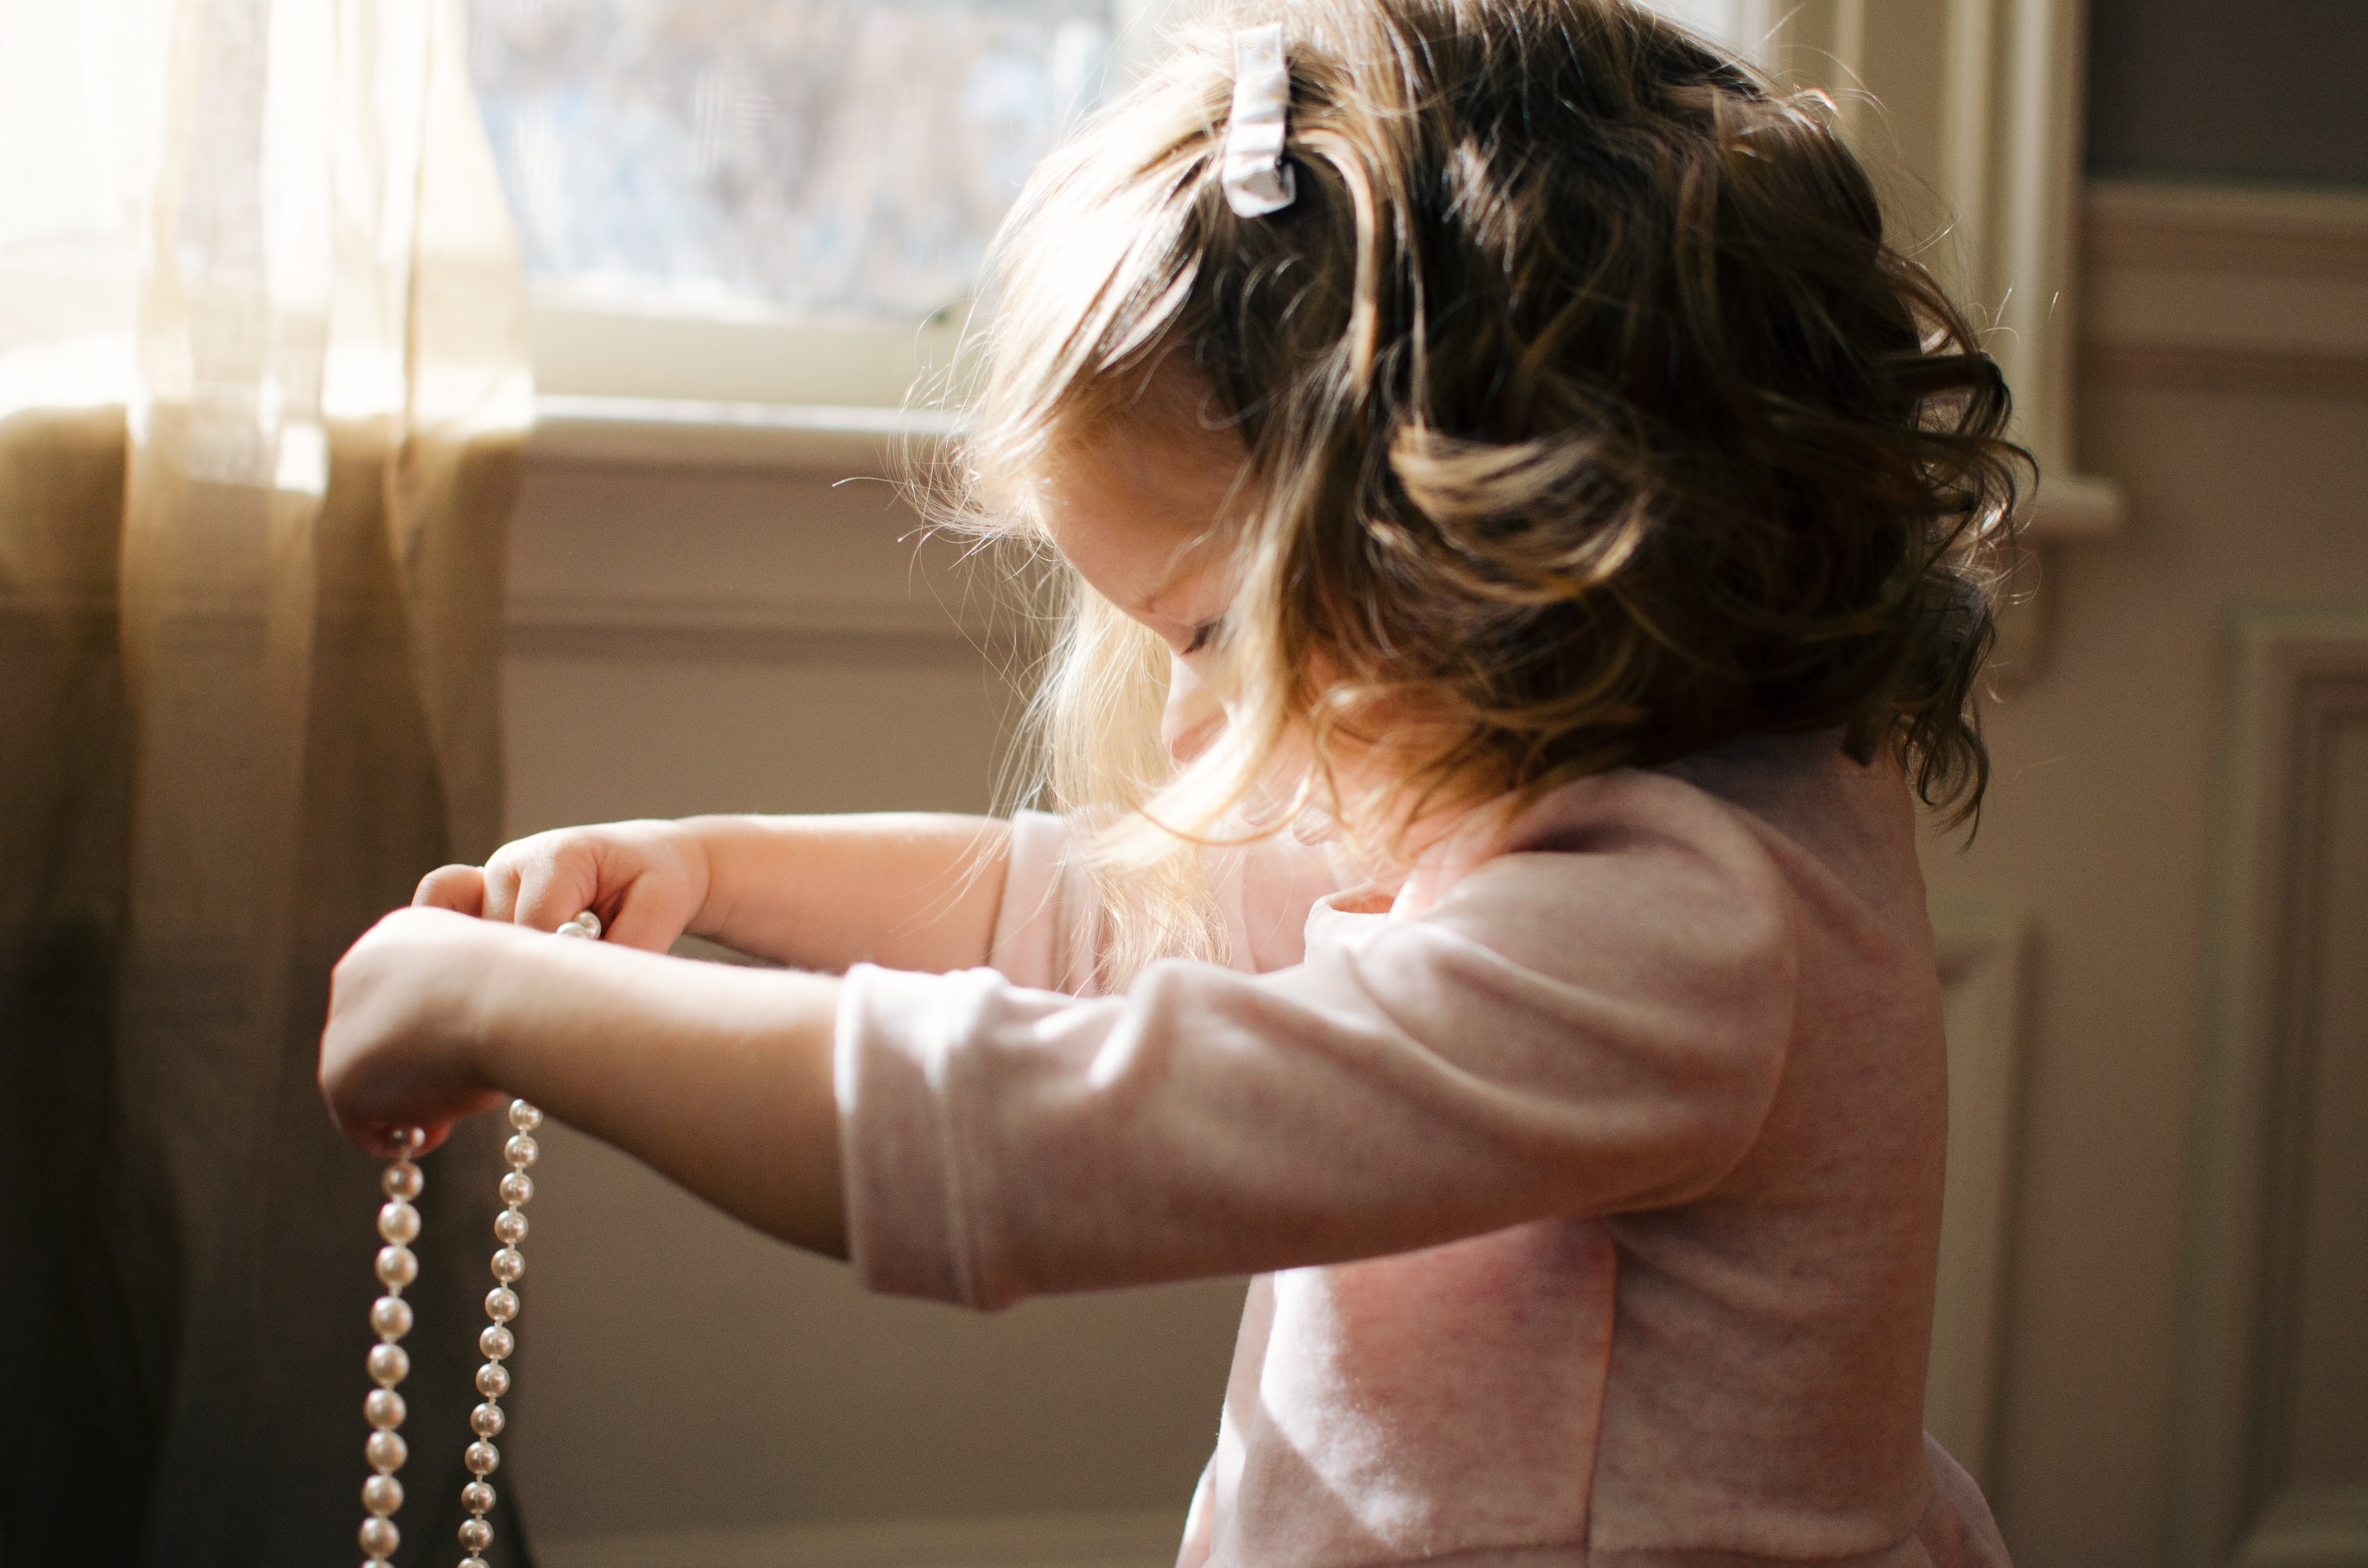 girl holding white pearl necklace inside room